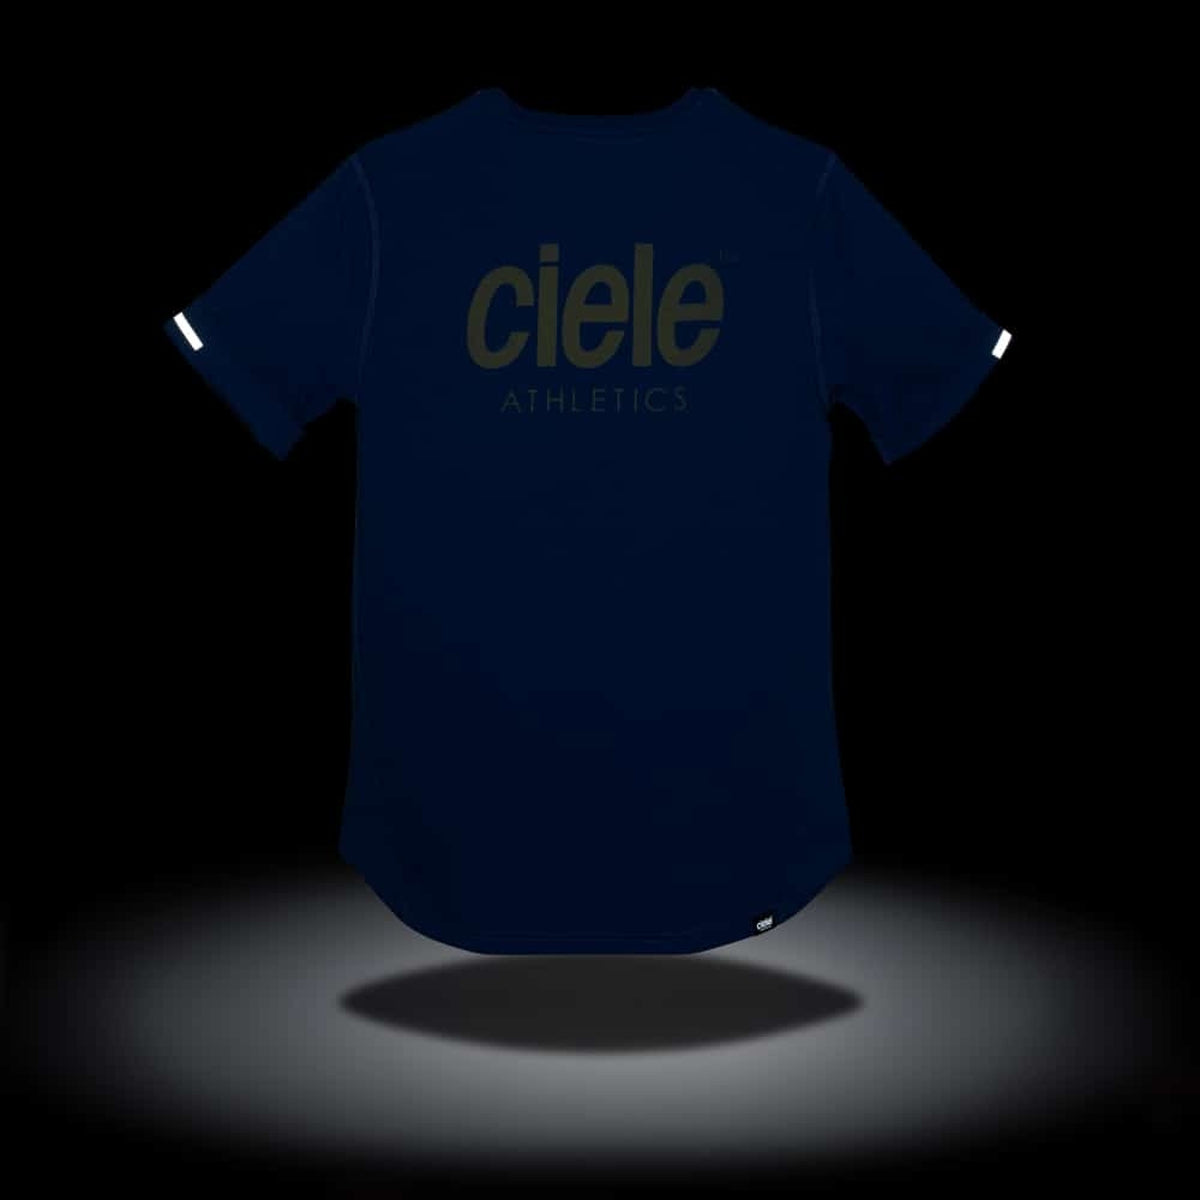 Ciele Not So Basic T-Shirt - Athletics - Seawall